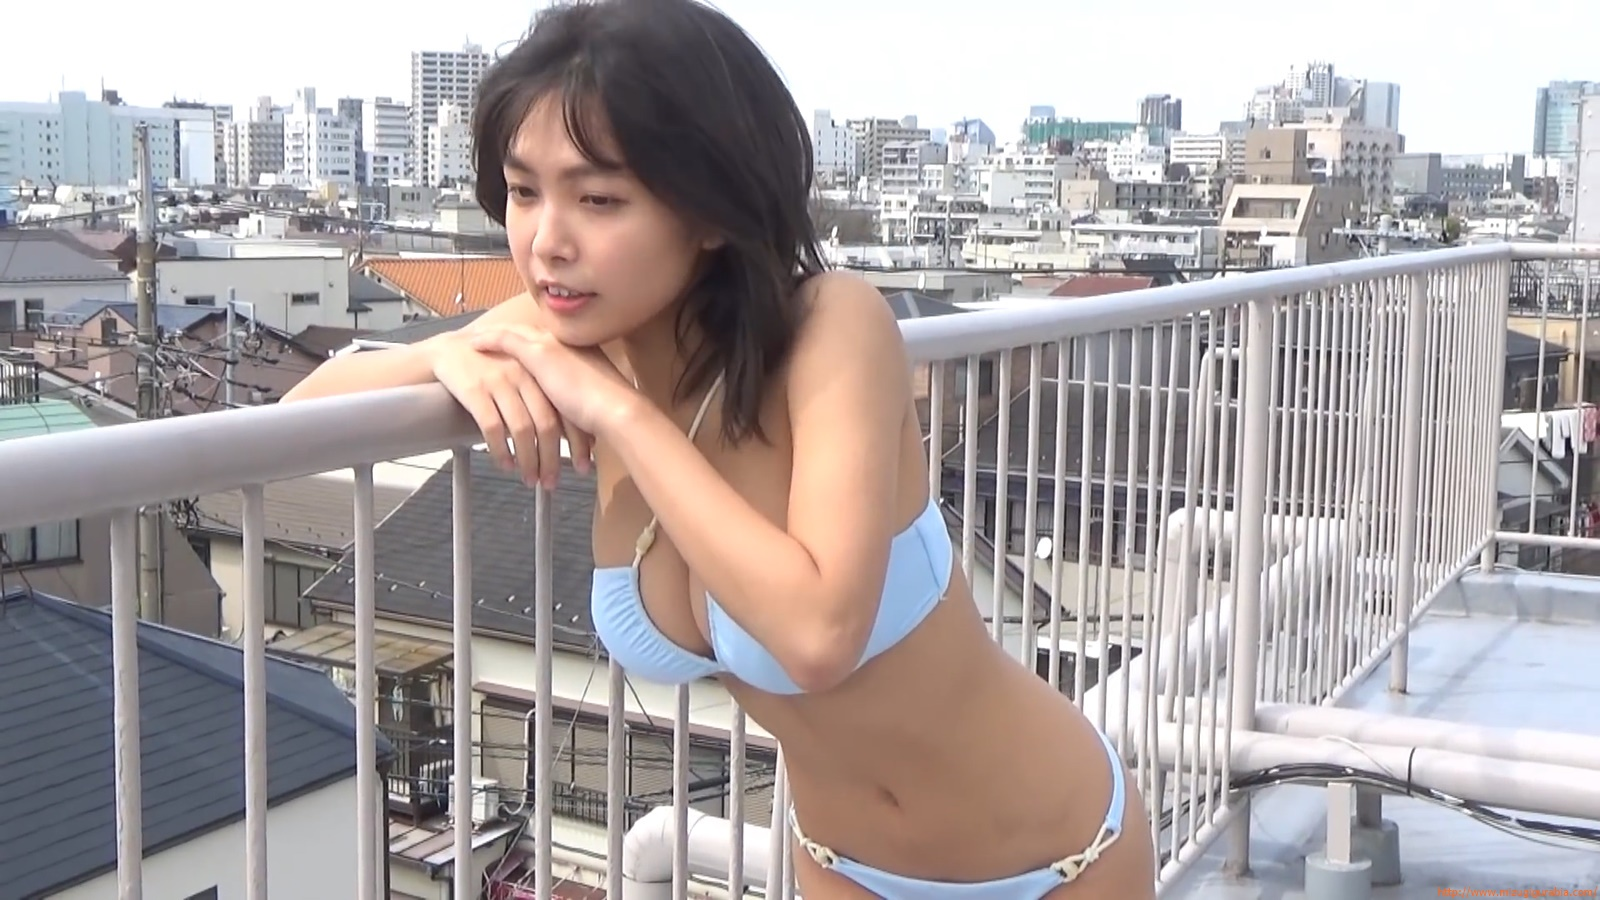 The gravure that makes all Japan cheer up Rio Teramoto 106